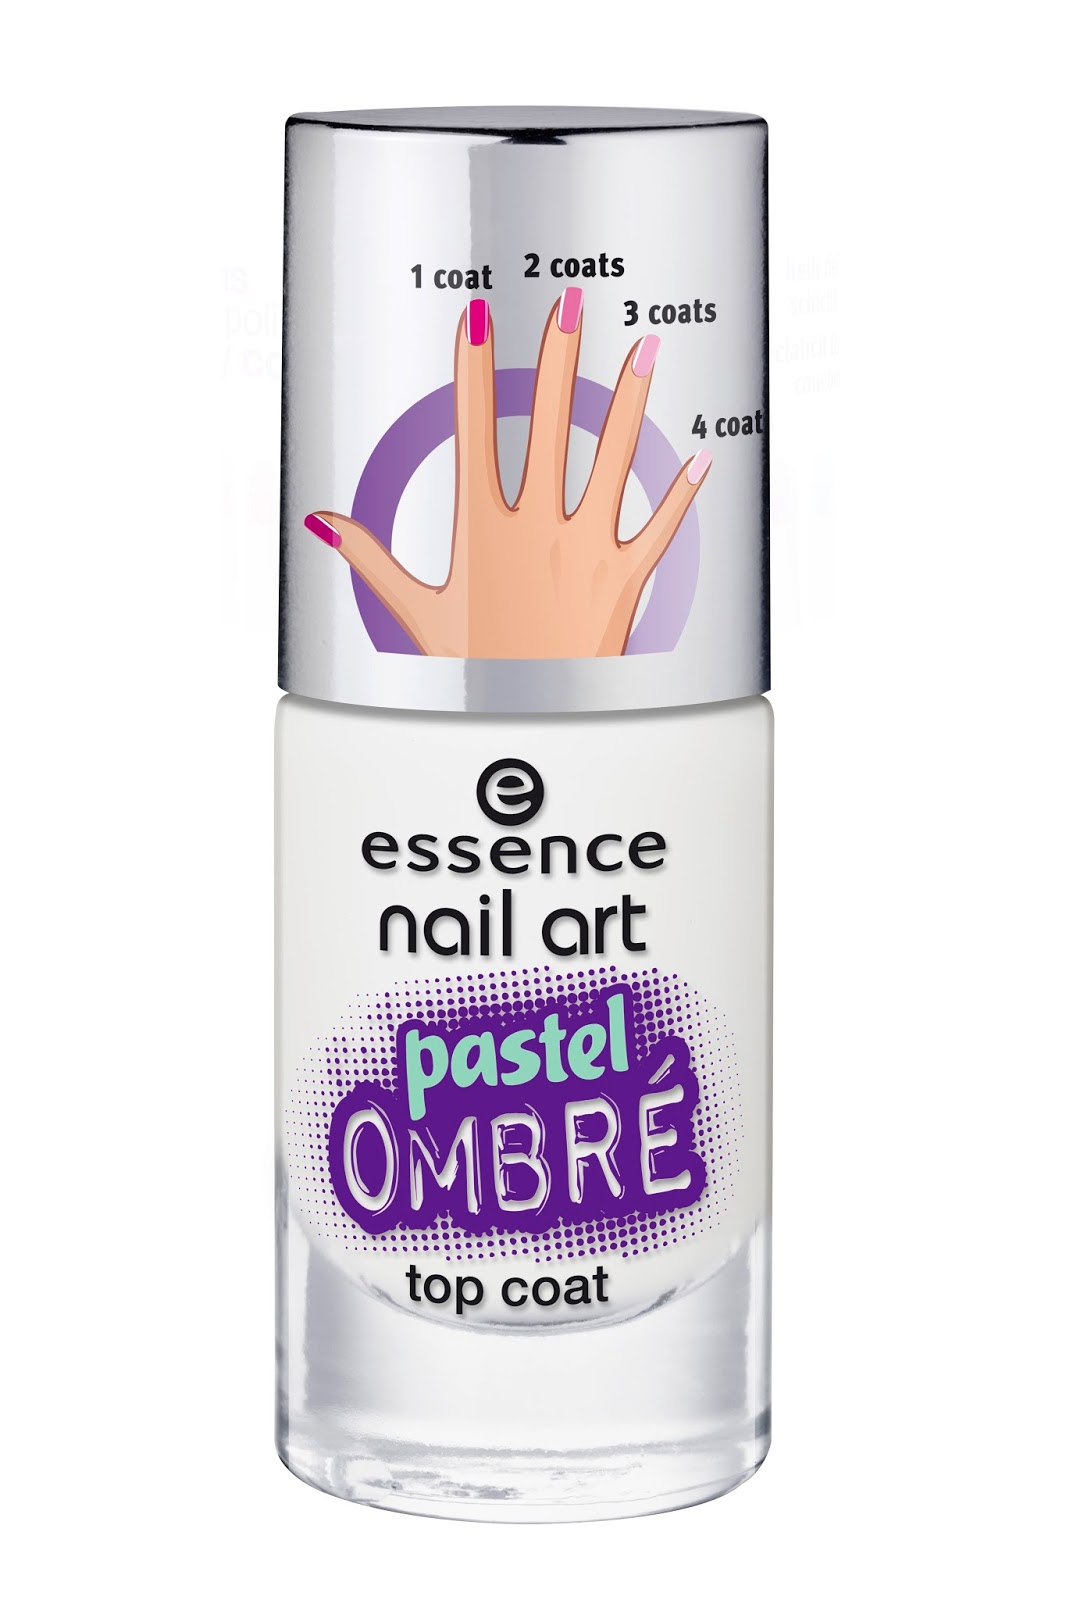 Eessence nail art pastel ombré top coat